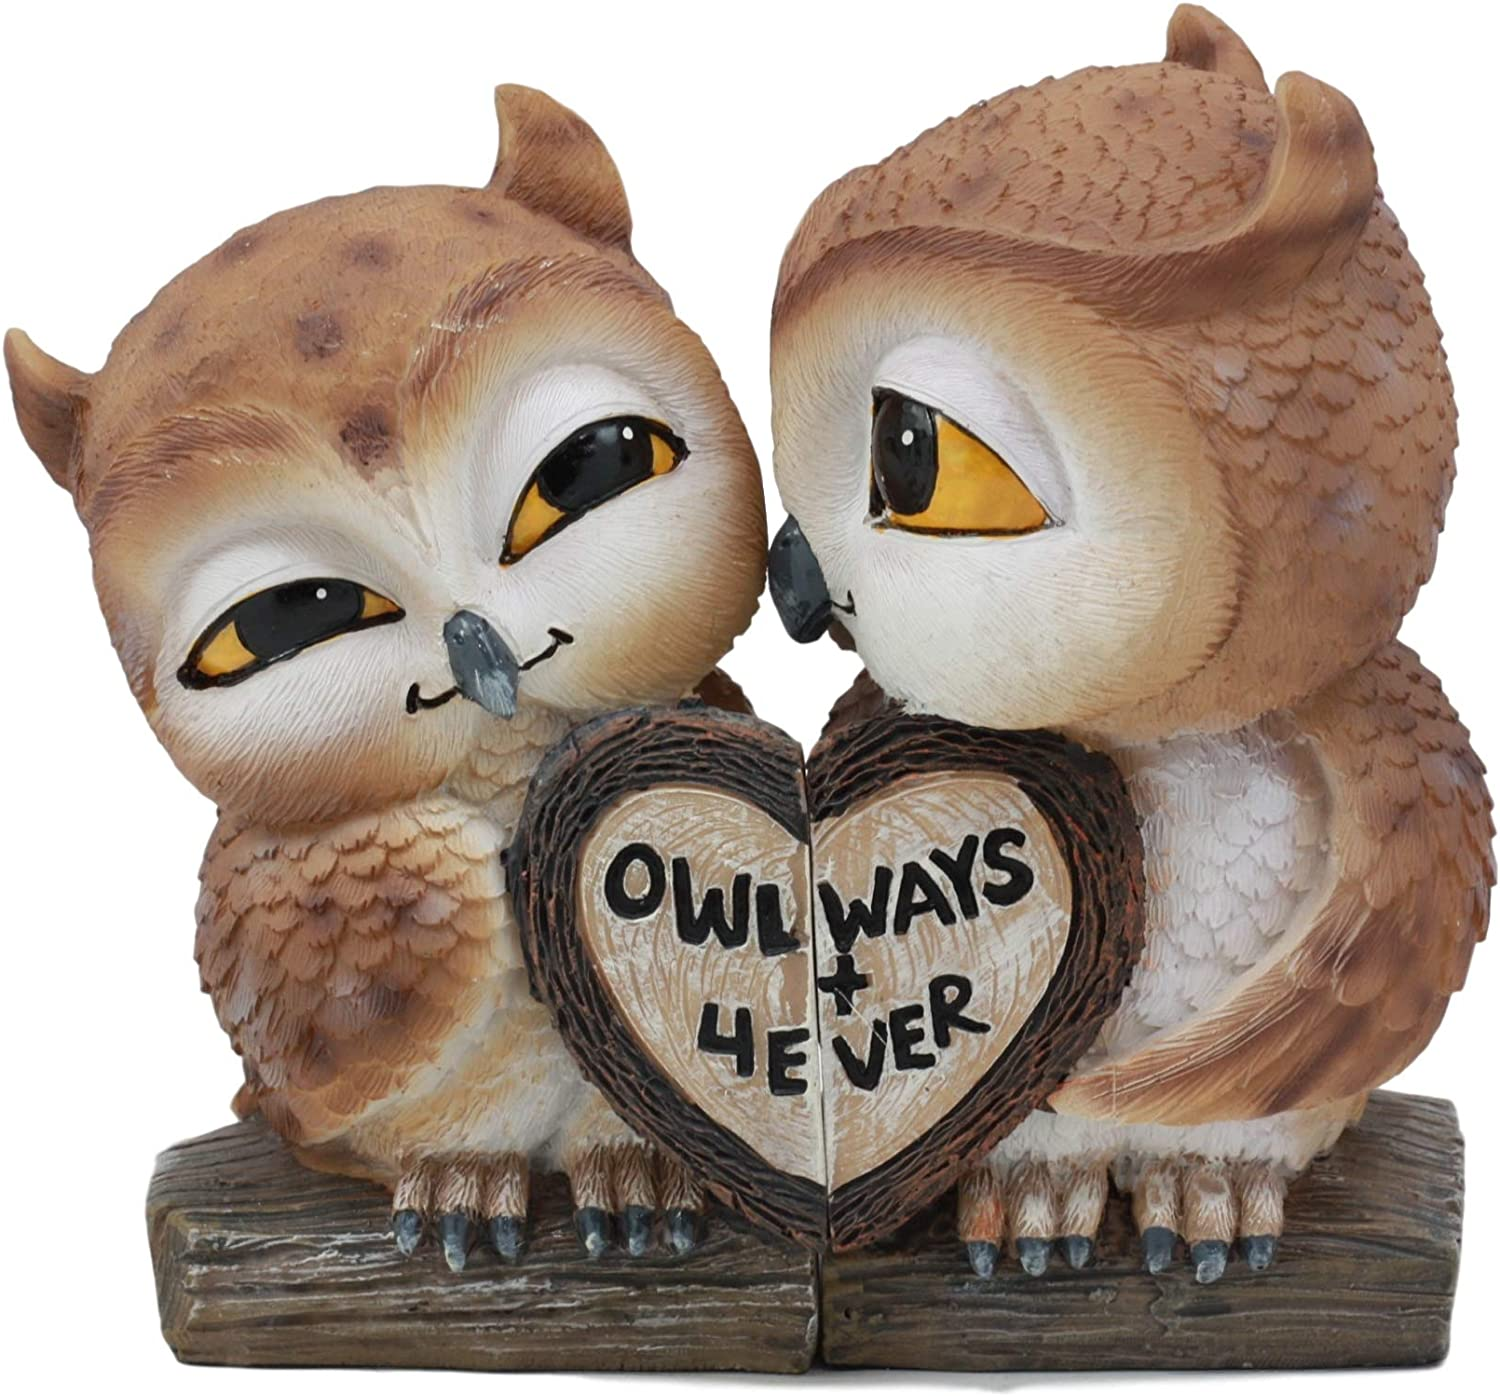 Ebros Romantic Kissing Love Owl Couple Decor Statue 2 Piece Set Decorative Figurine Valentines Birds Pair of Owls Holding Heart Shaped Sign Saying Owlways 4Ever